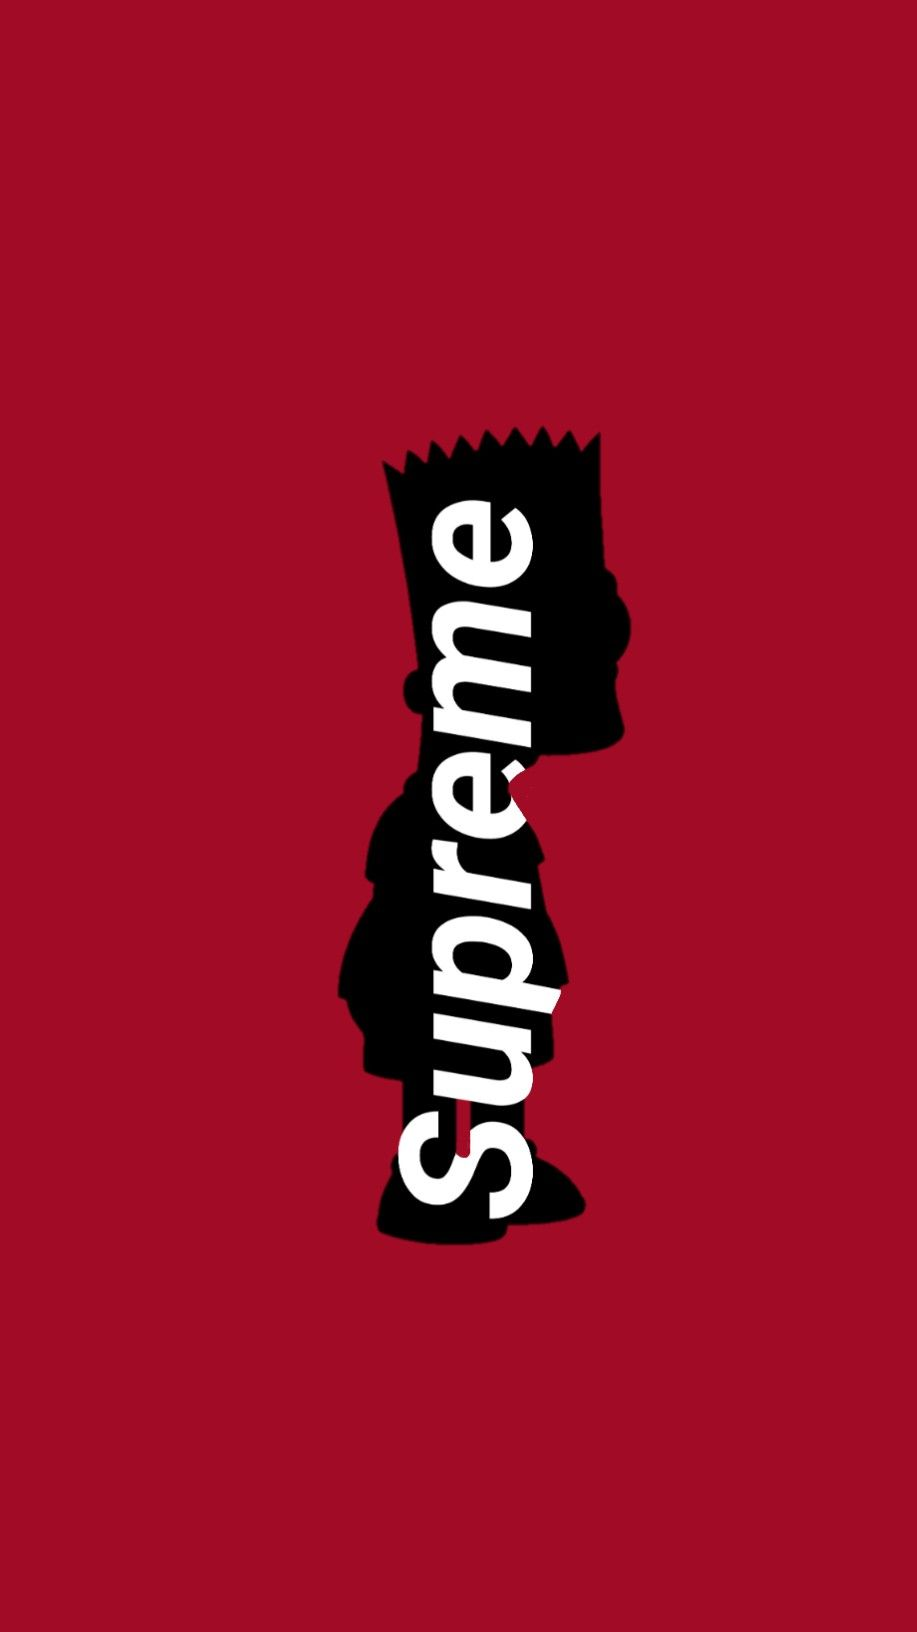 Supreme Bart Supreme Iphone Wallpaper Supreme Wallpaper Supreme Wallpaper Hd